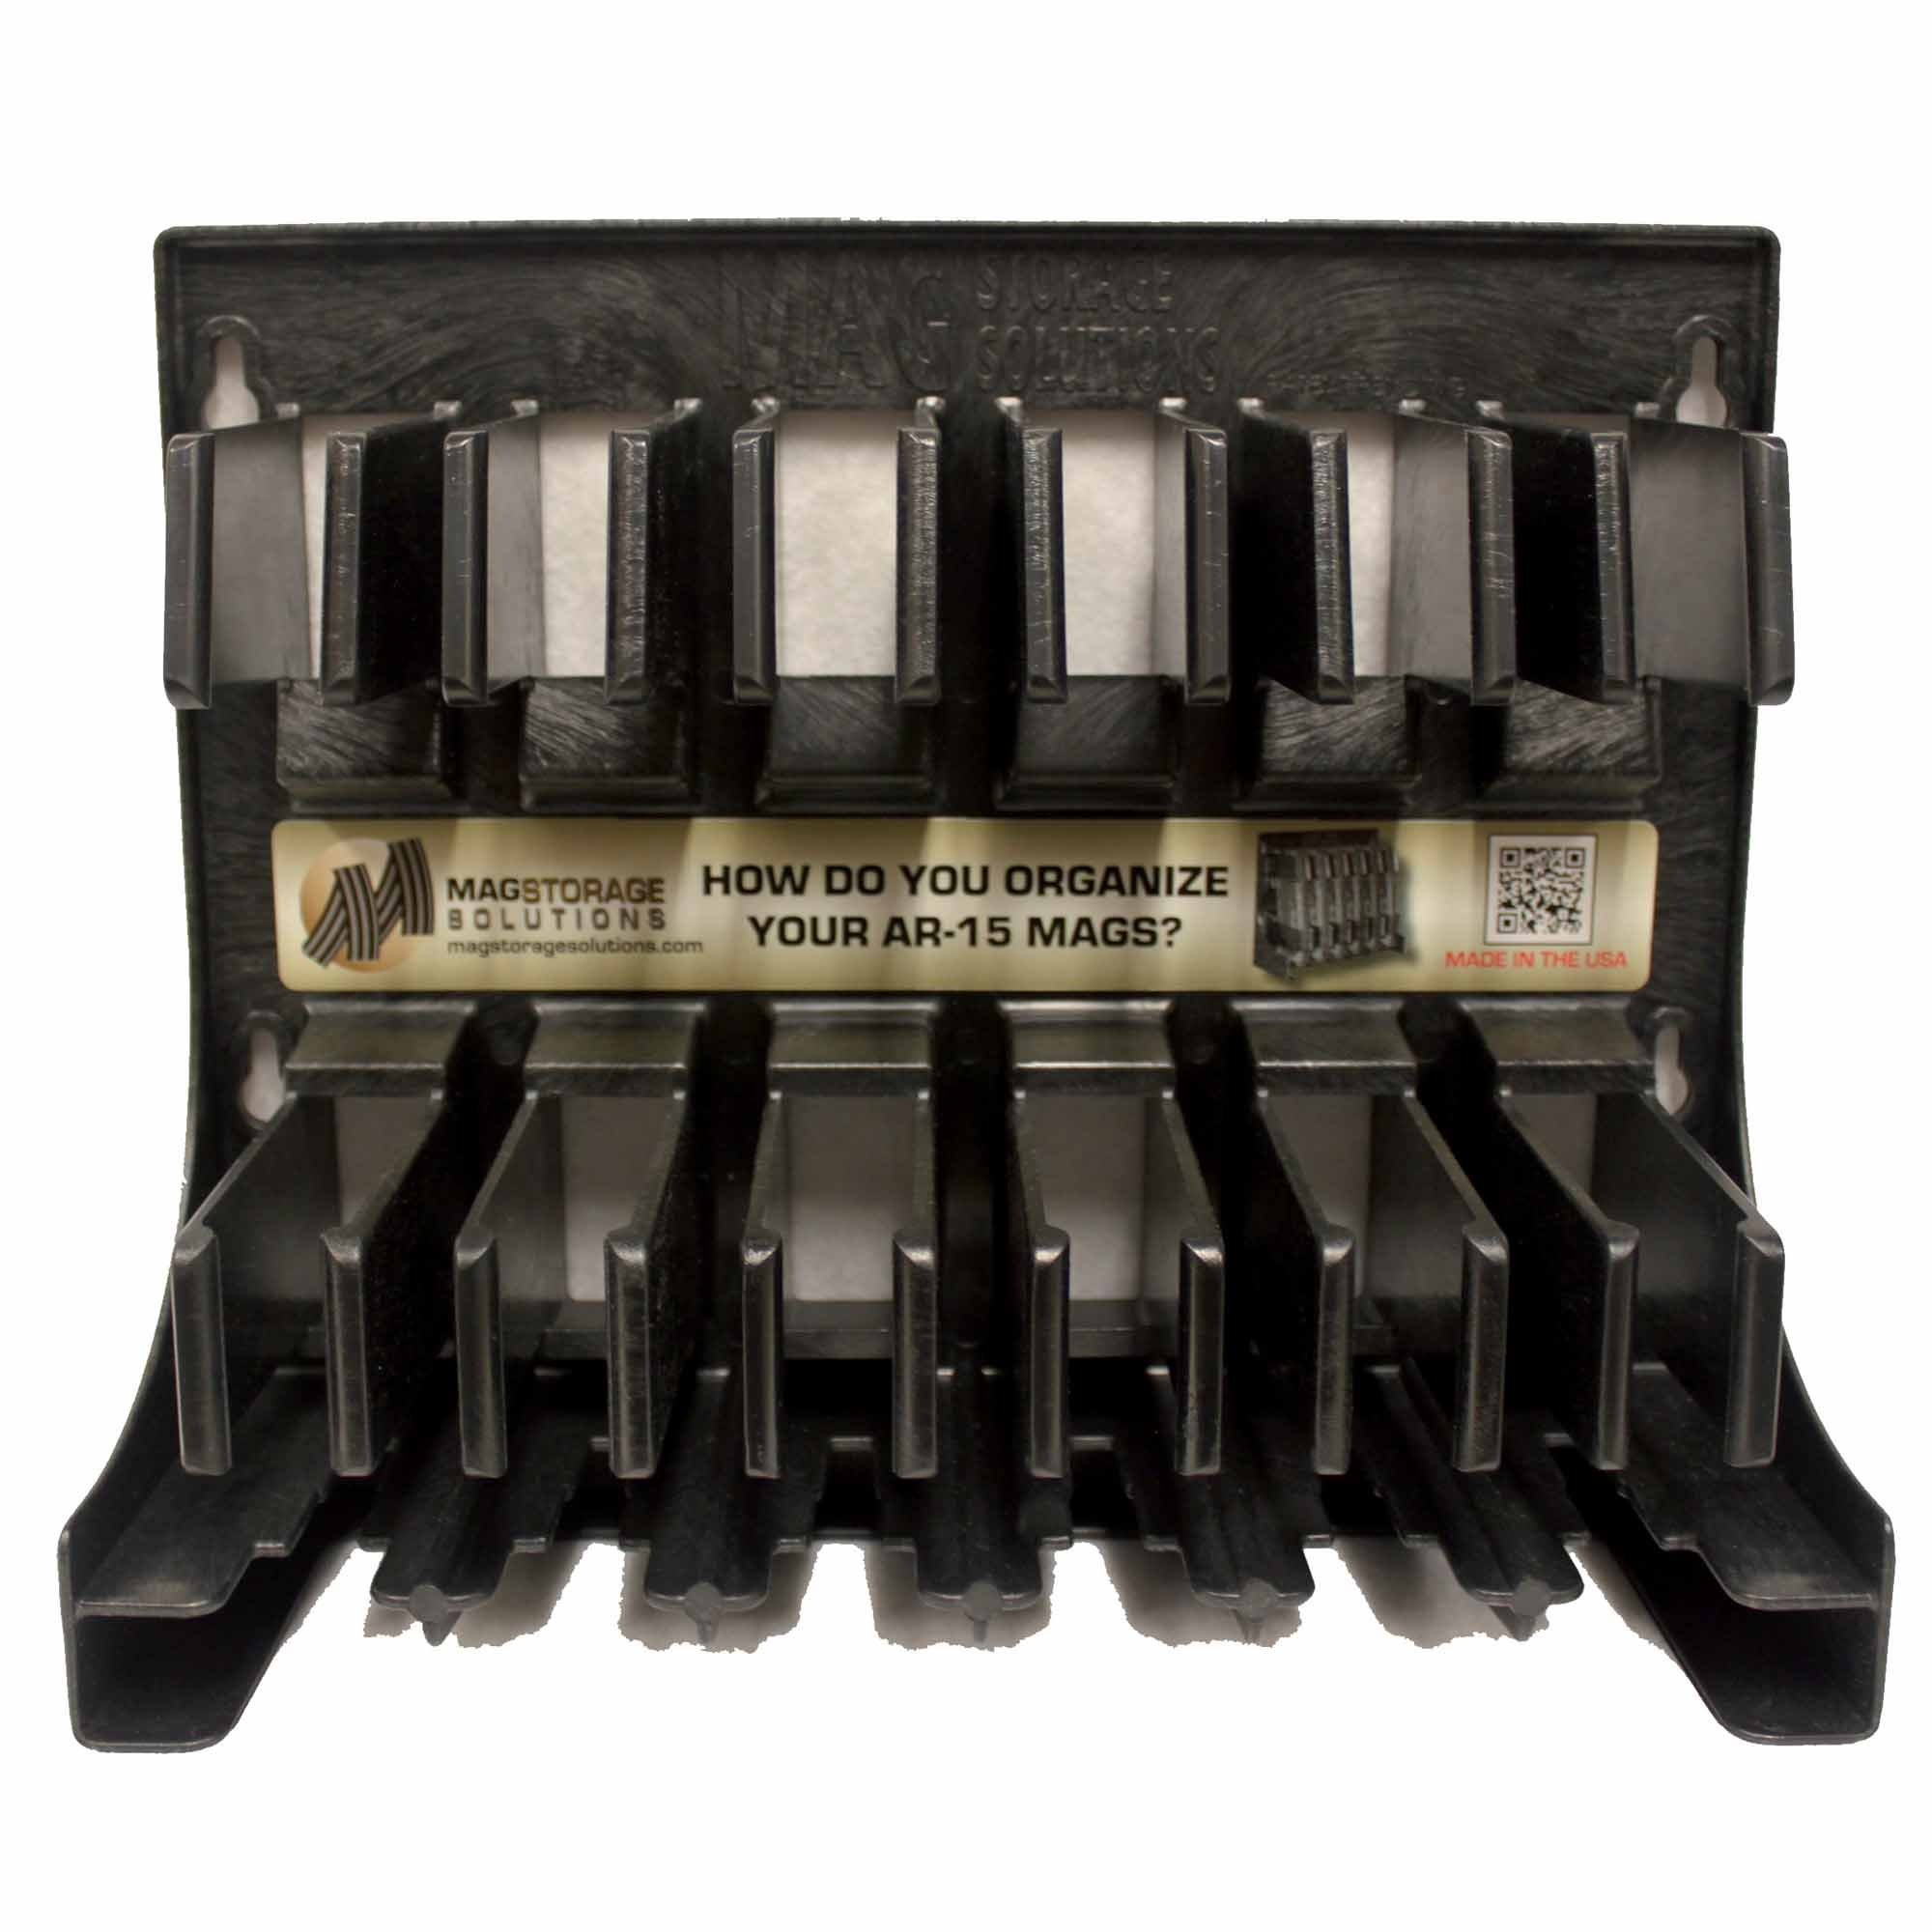 Mag Storage Solutions 5.56 .223 MagHolder Magazine Holder Storage Rack Magpul by MagStorage Solutions (Image #1)